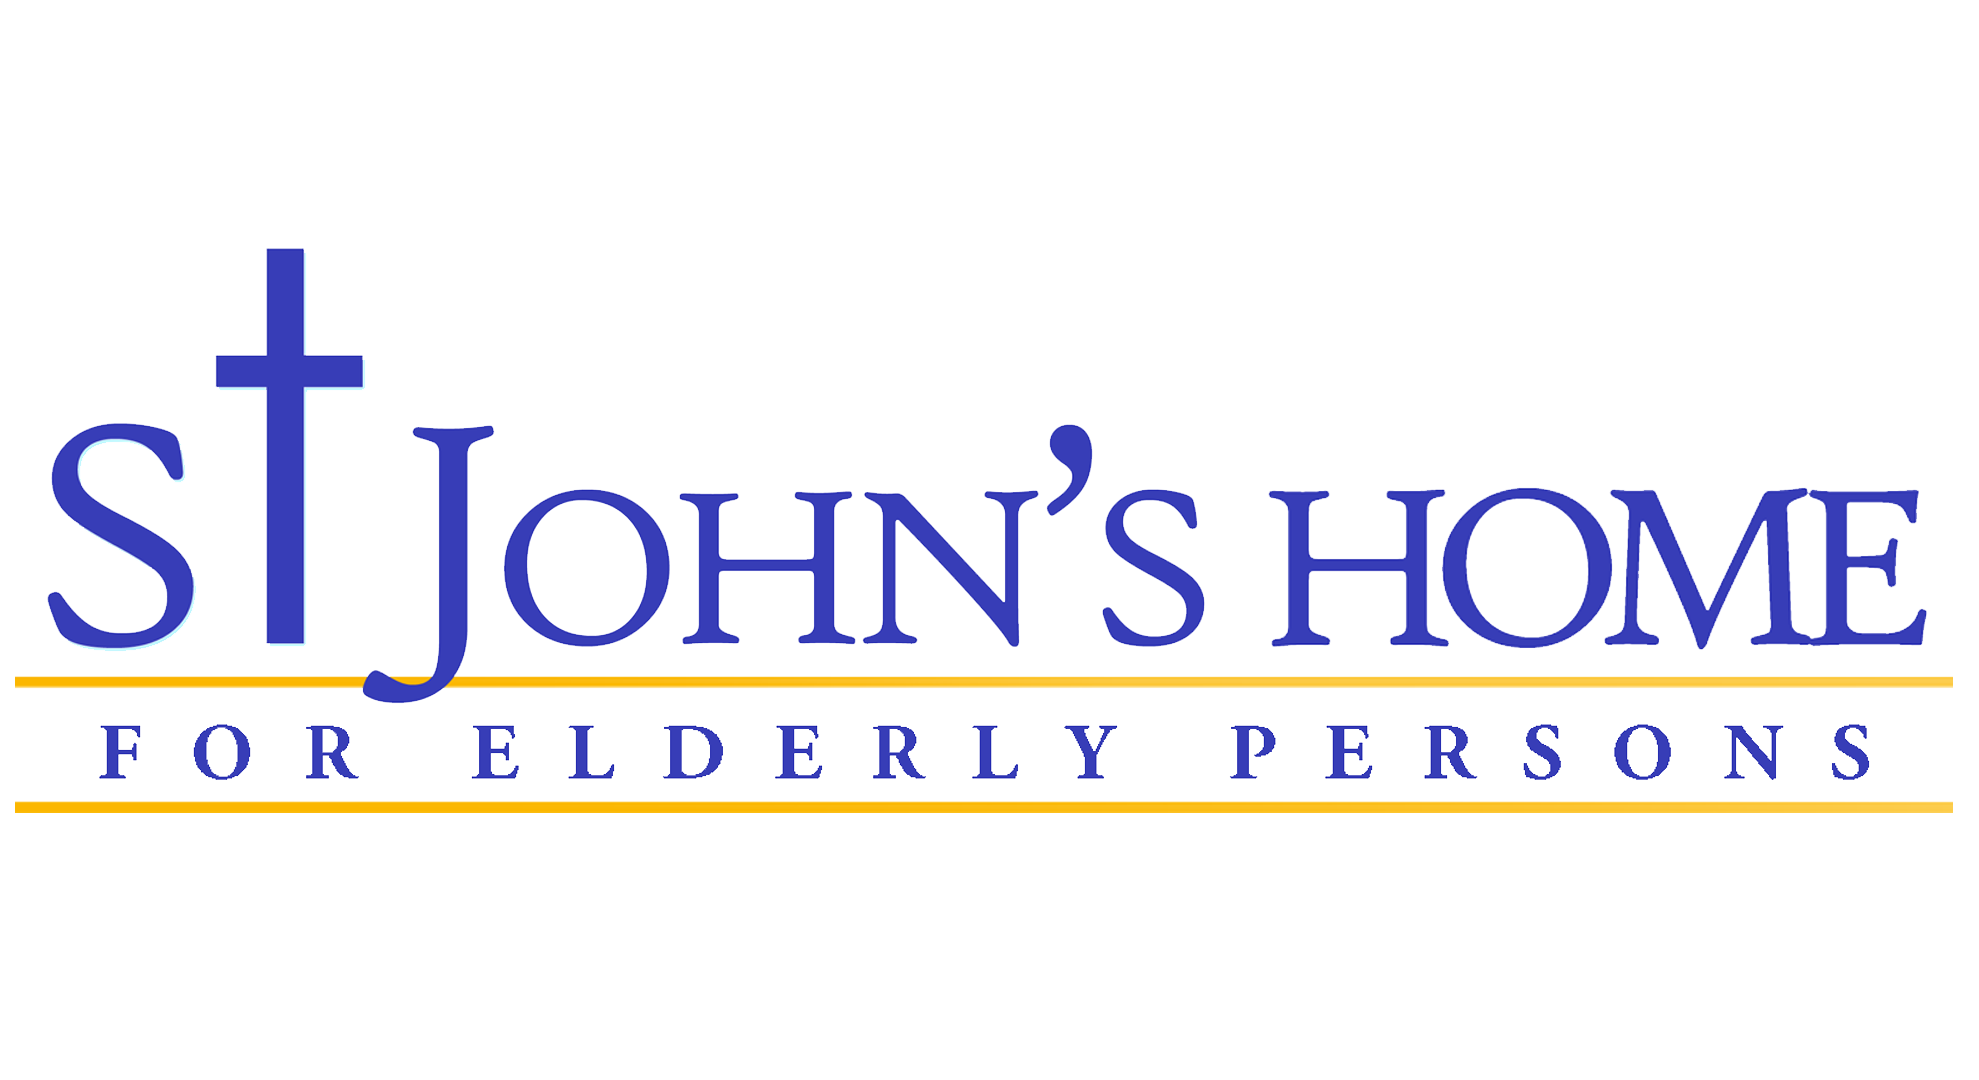 St. John's Home For Elderly Persons